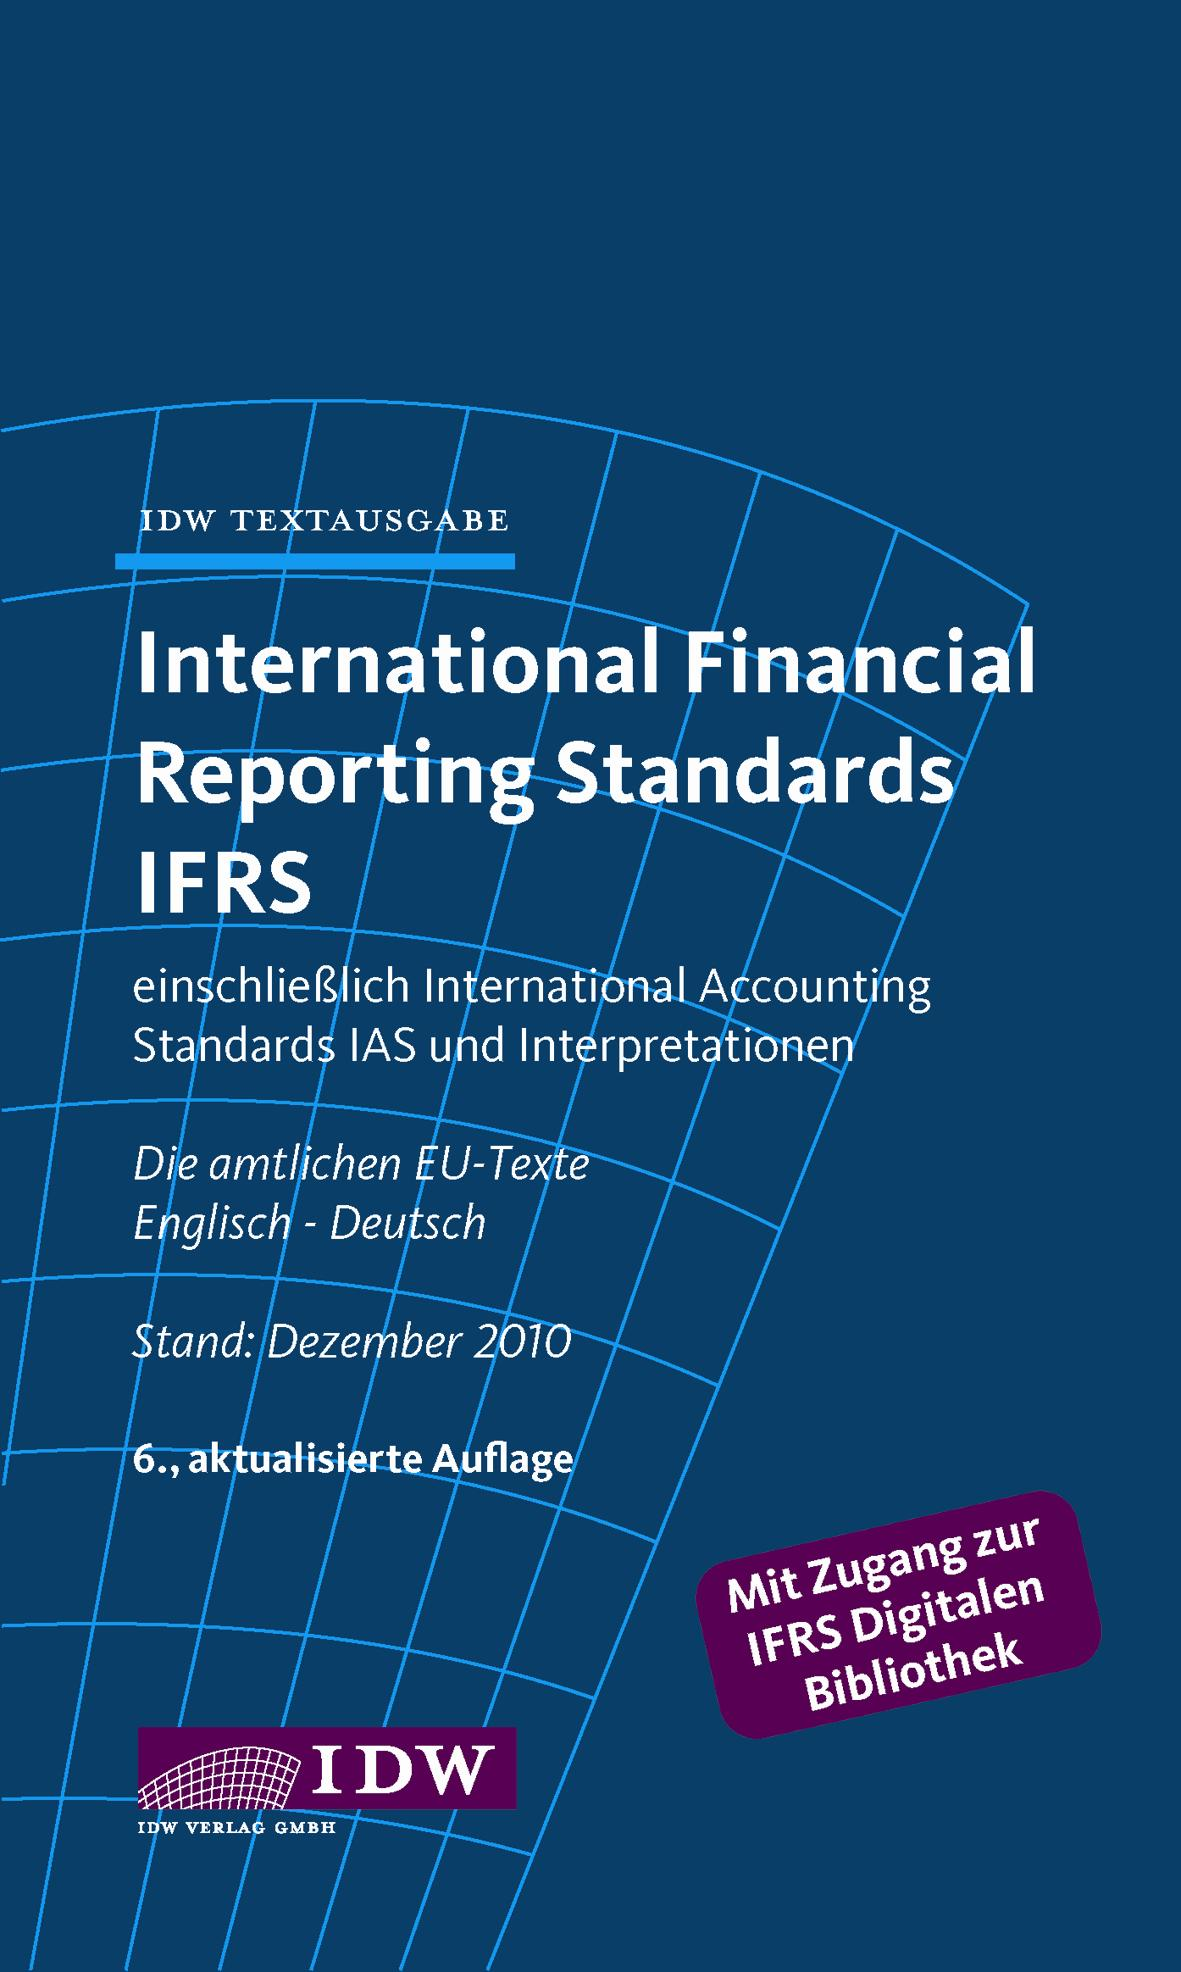 International Financial Reporting Standards IFRS: Einschließlich International Accounting Standards (IAS) und Interpretationen. Die amtlichen EU-Texte [6. Auflage]